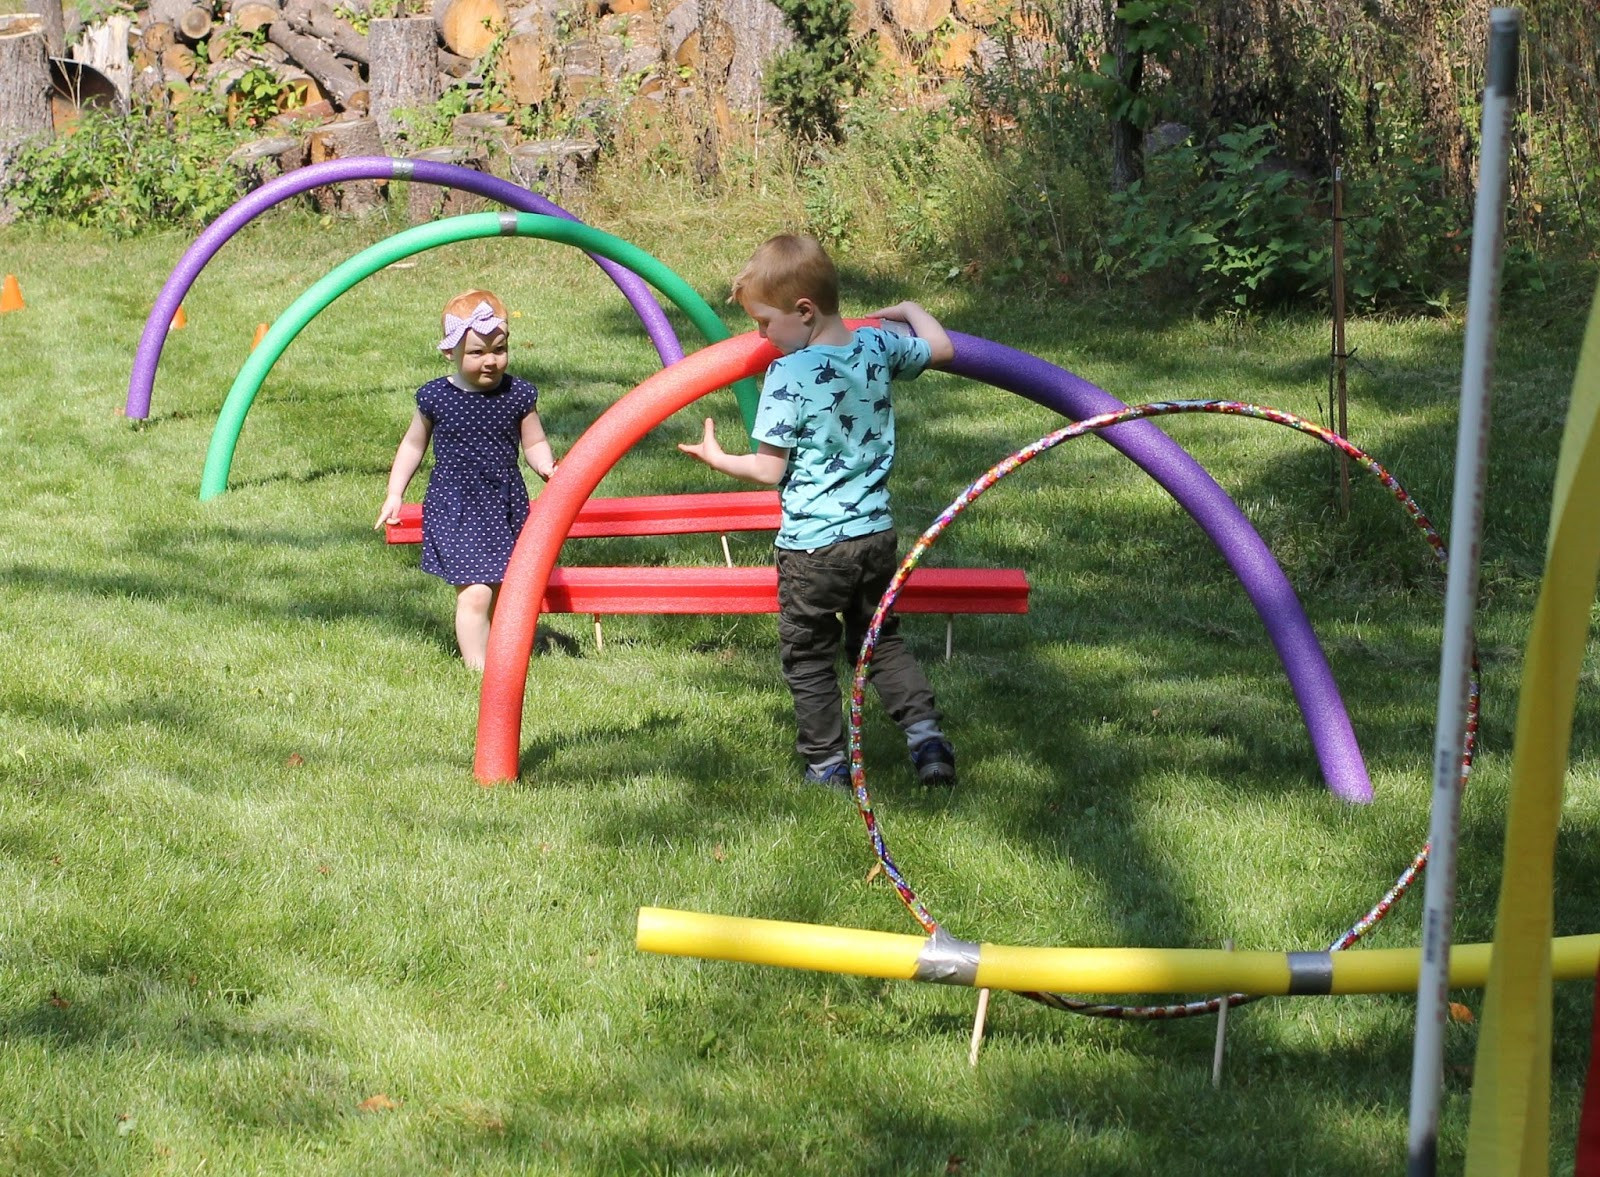 DIY Obstacle Course For Kids  DIY Obstacle Course for Kids · The Girl in the Red Shoes